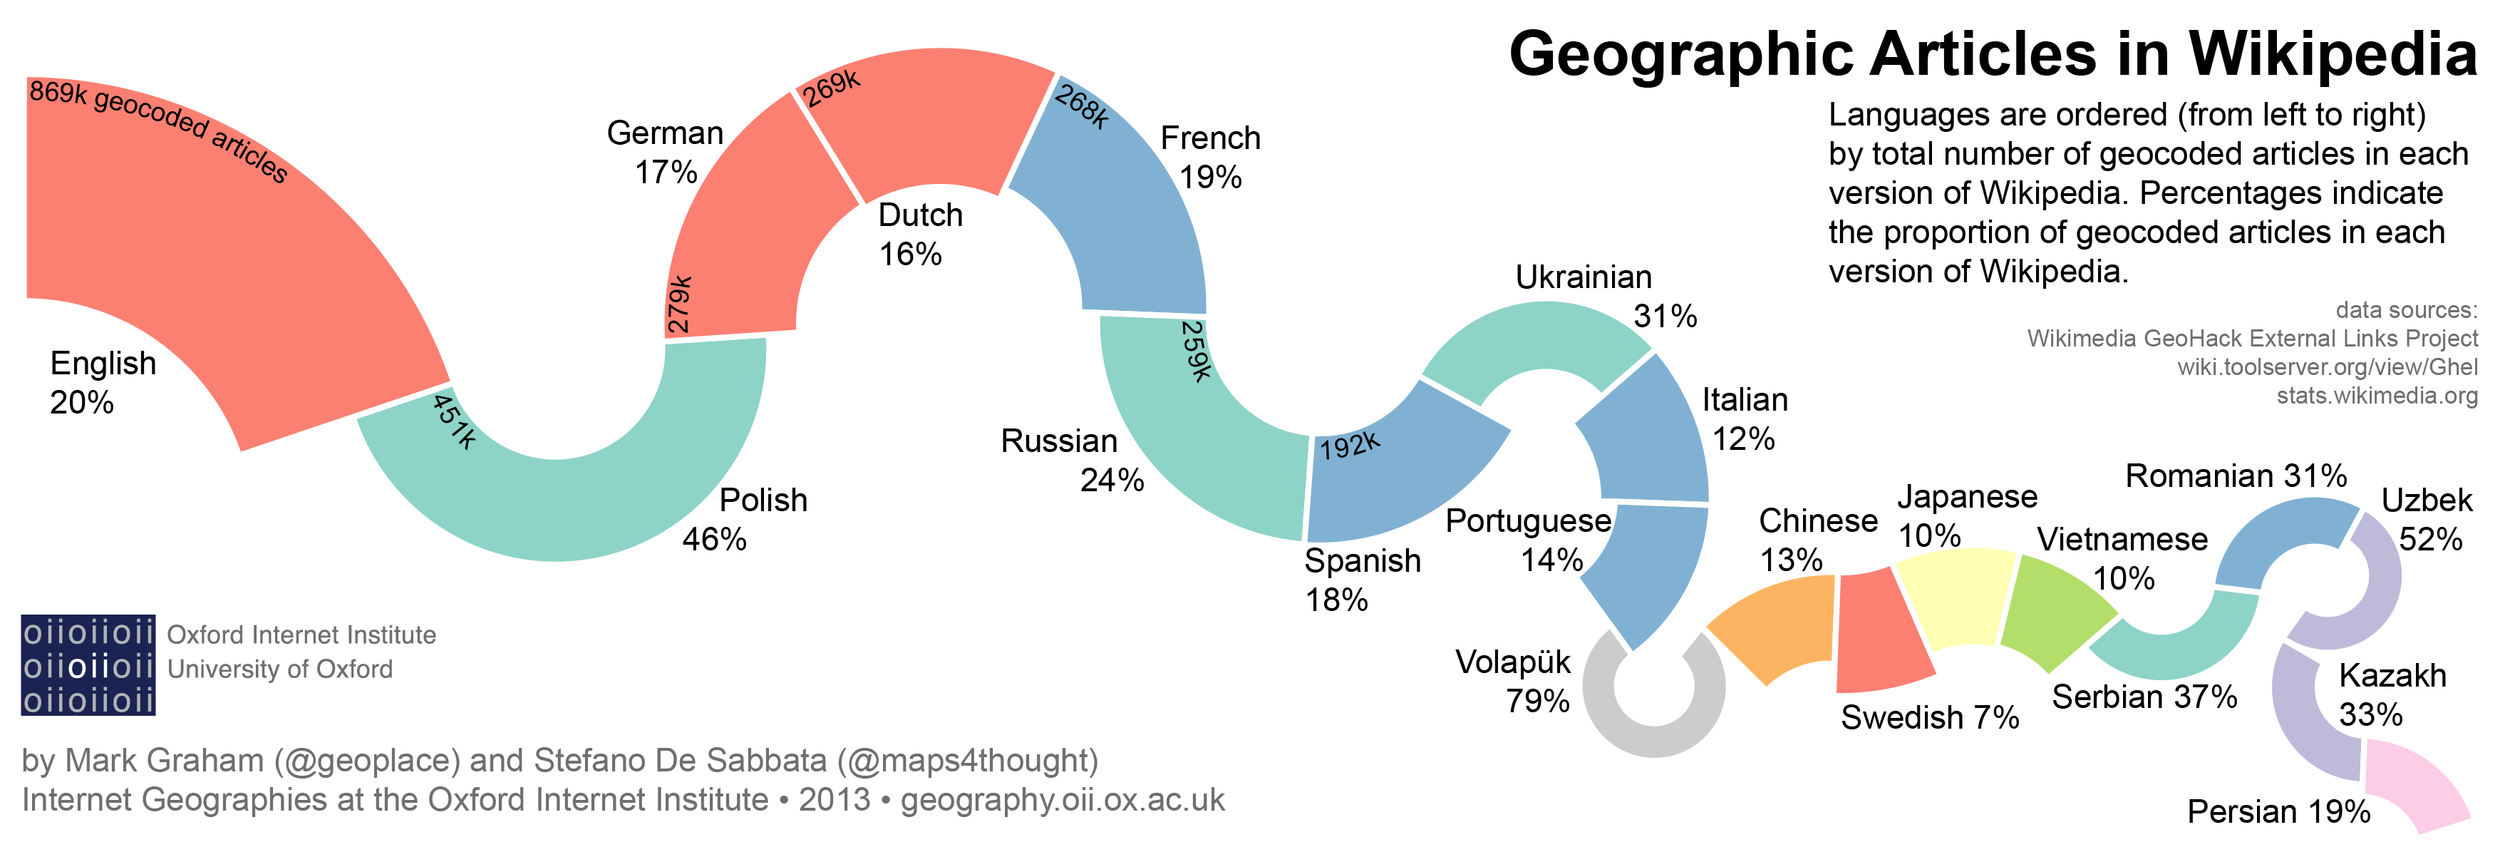 Geographic intersections of languages in Wikipedia